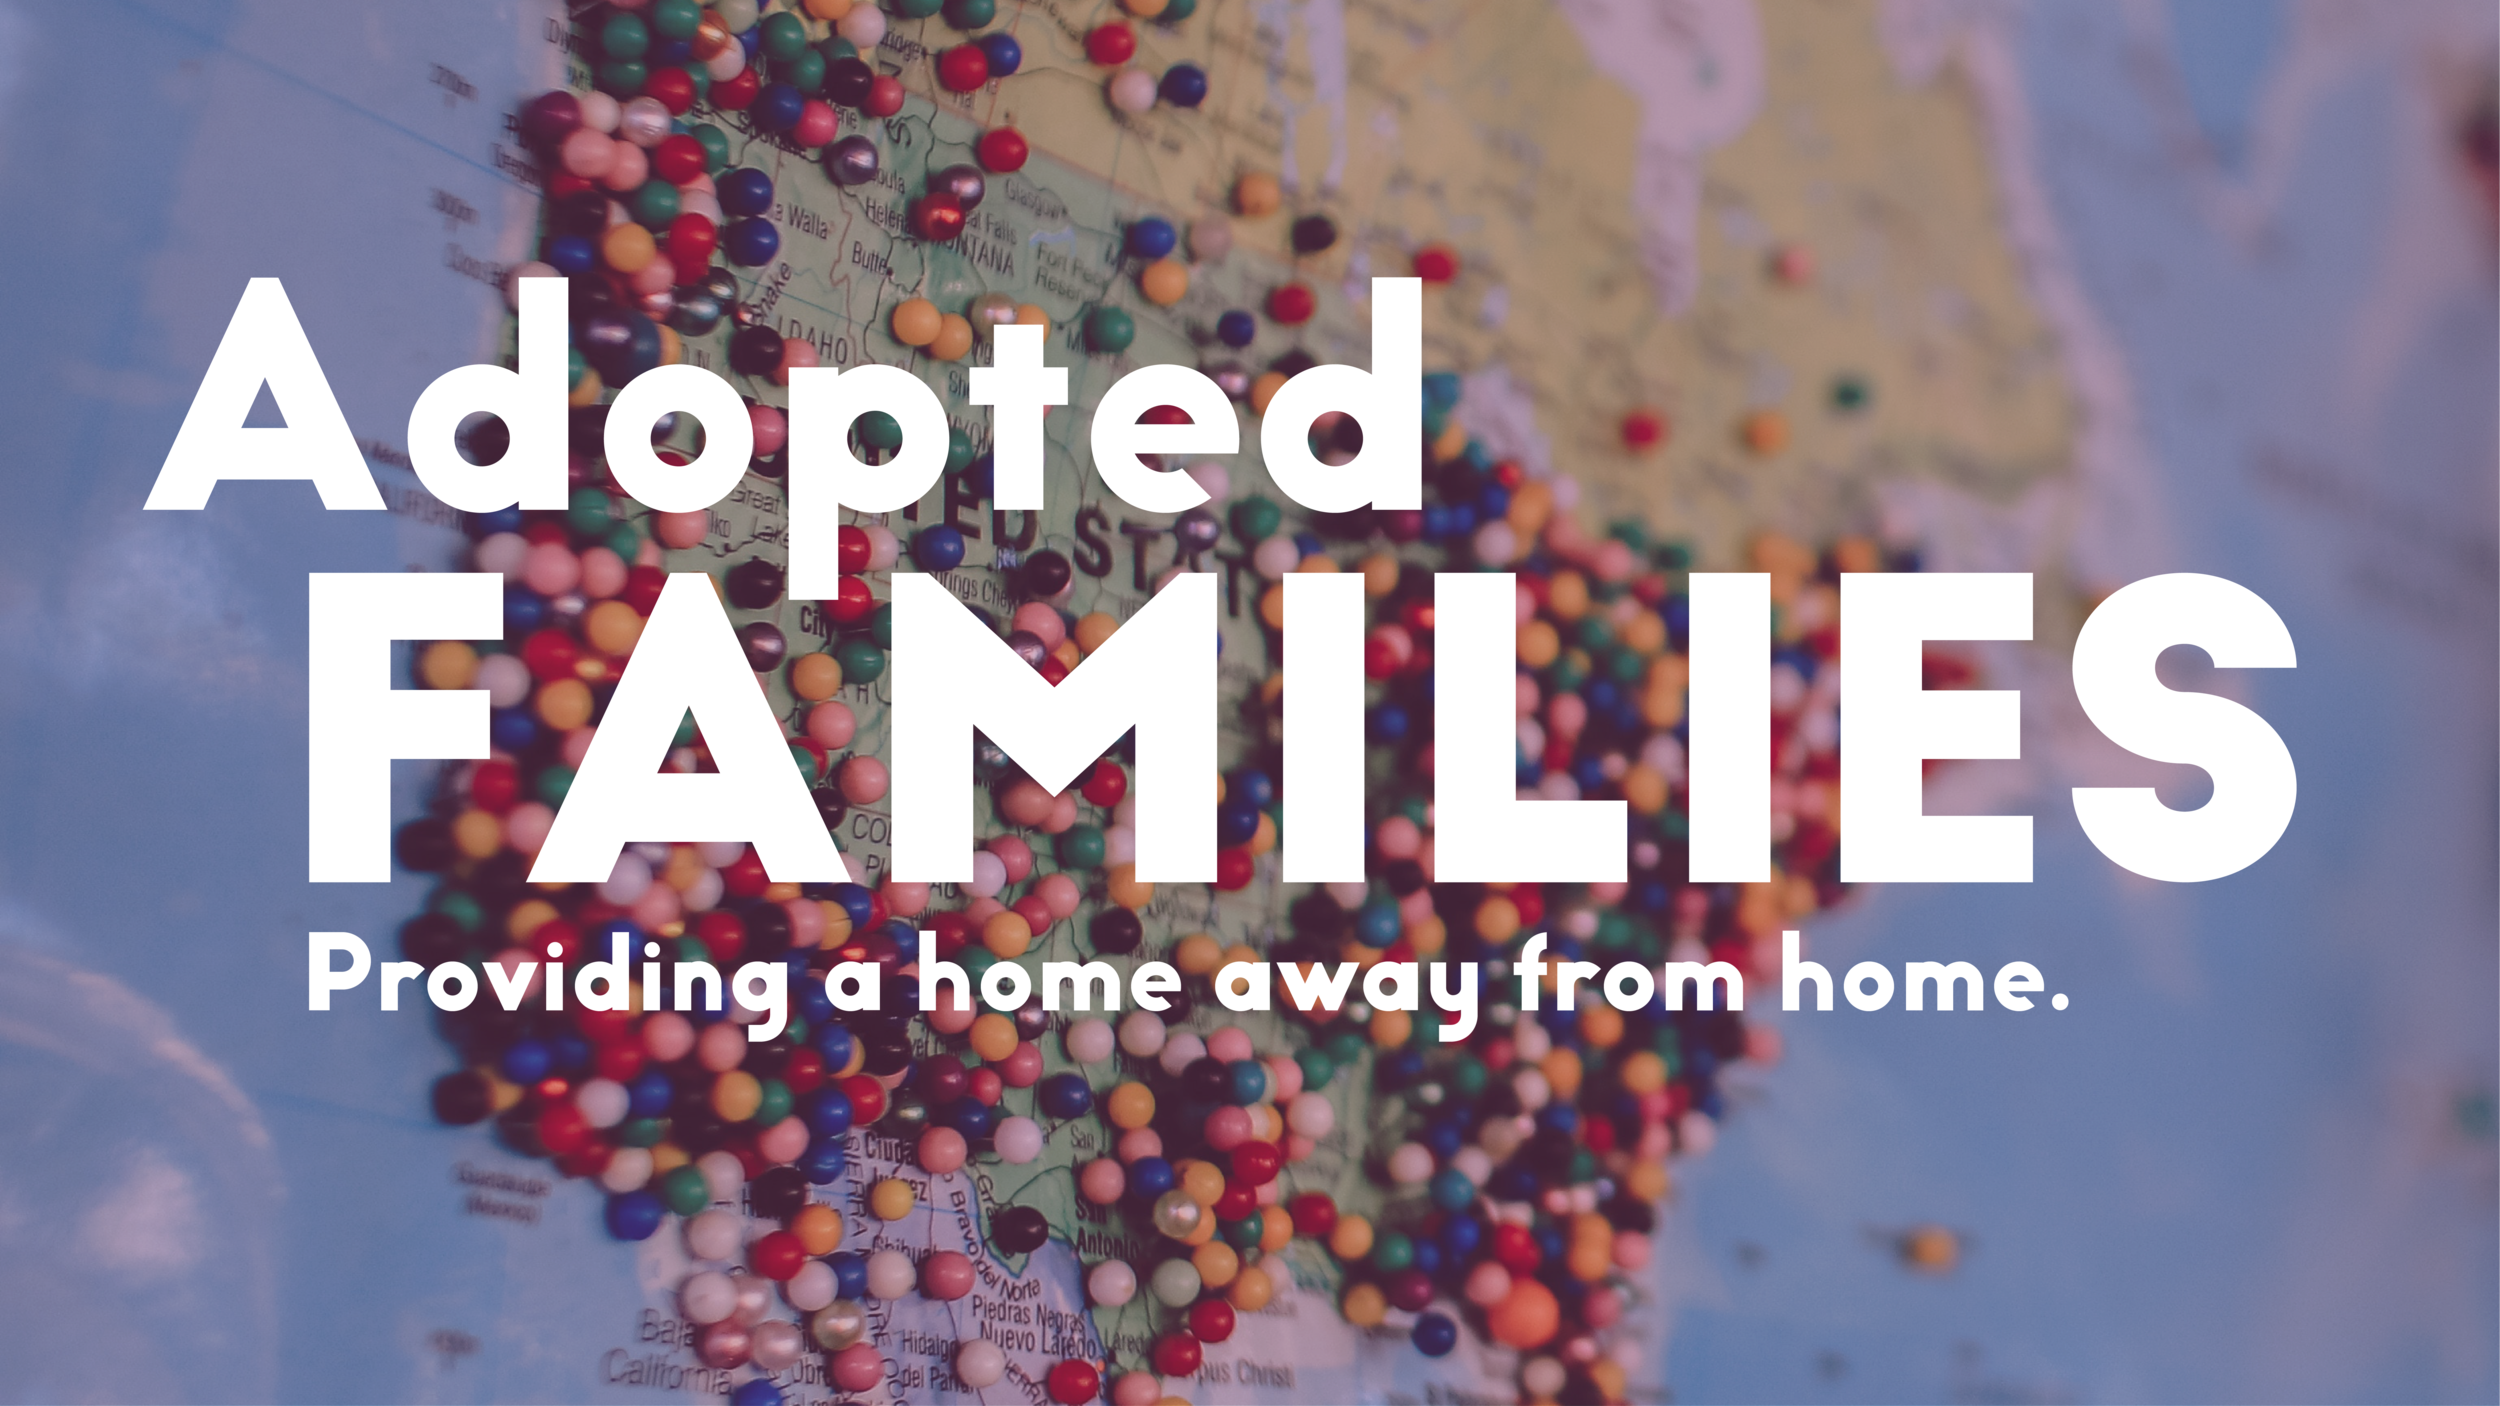 adopted_families_large_no_logo.png